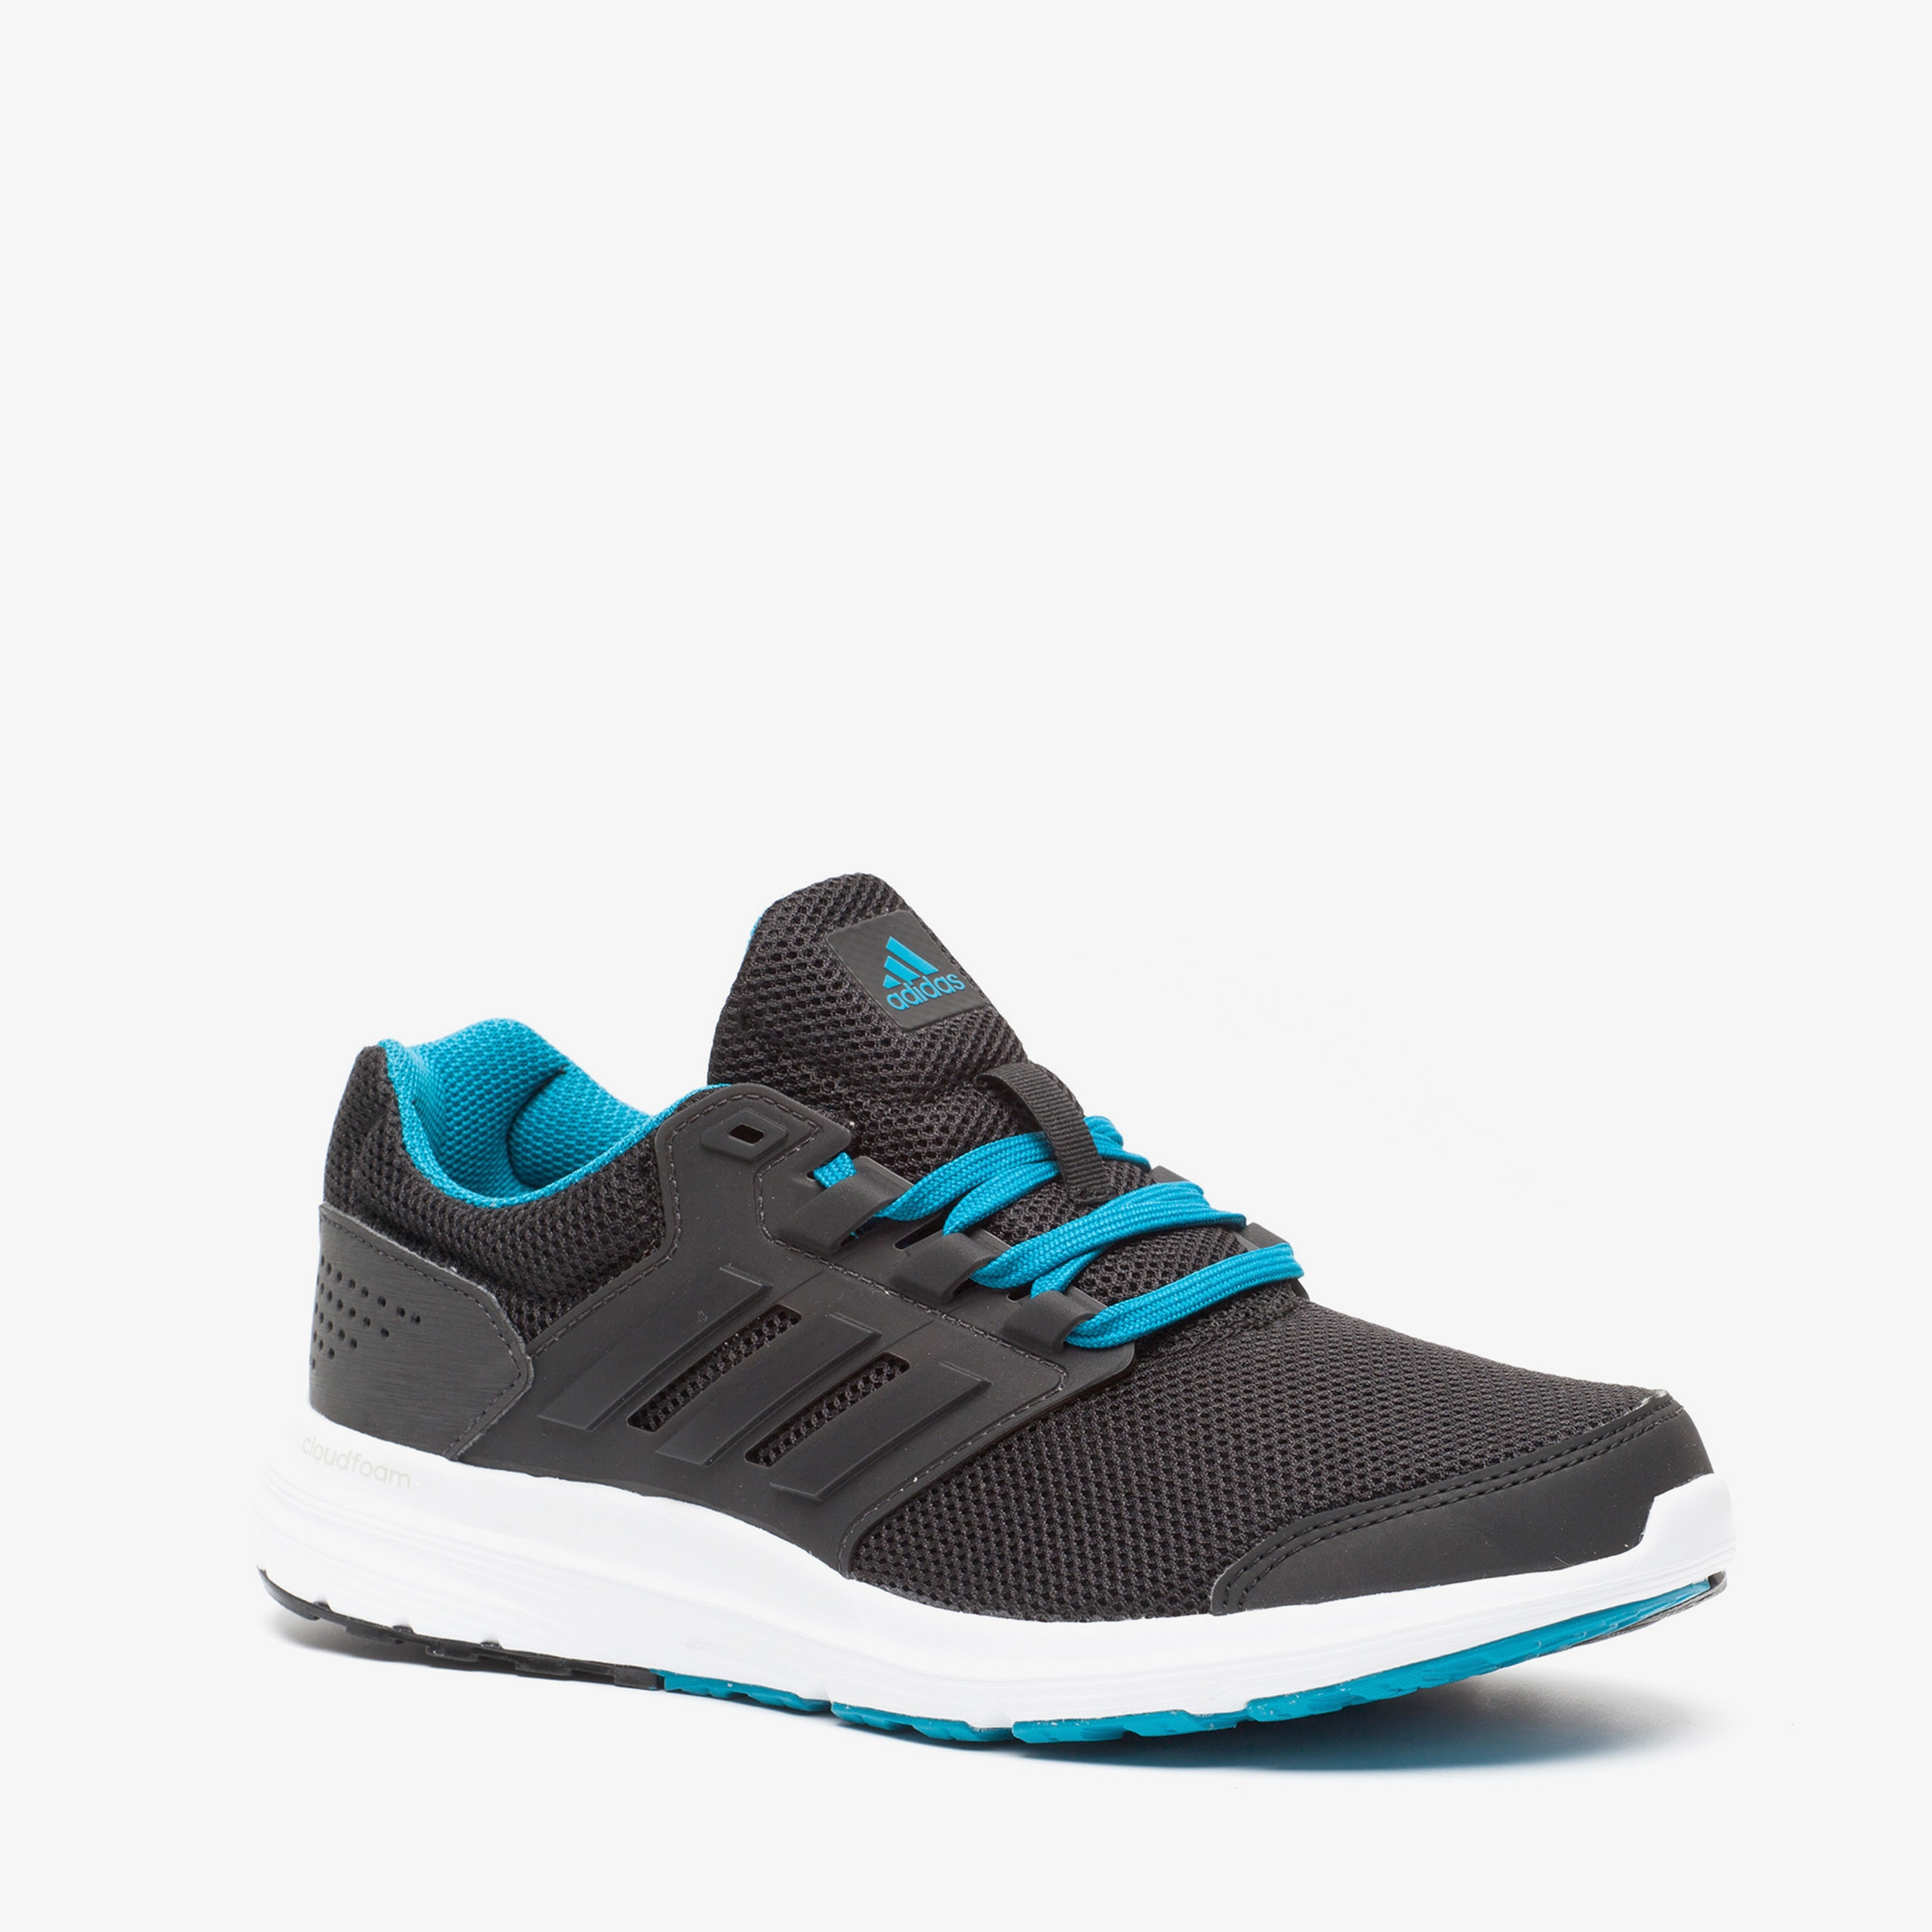 Adidas Galaxy 4W dames sneakers | Scapino.nl